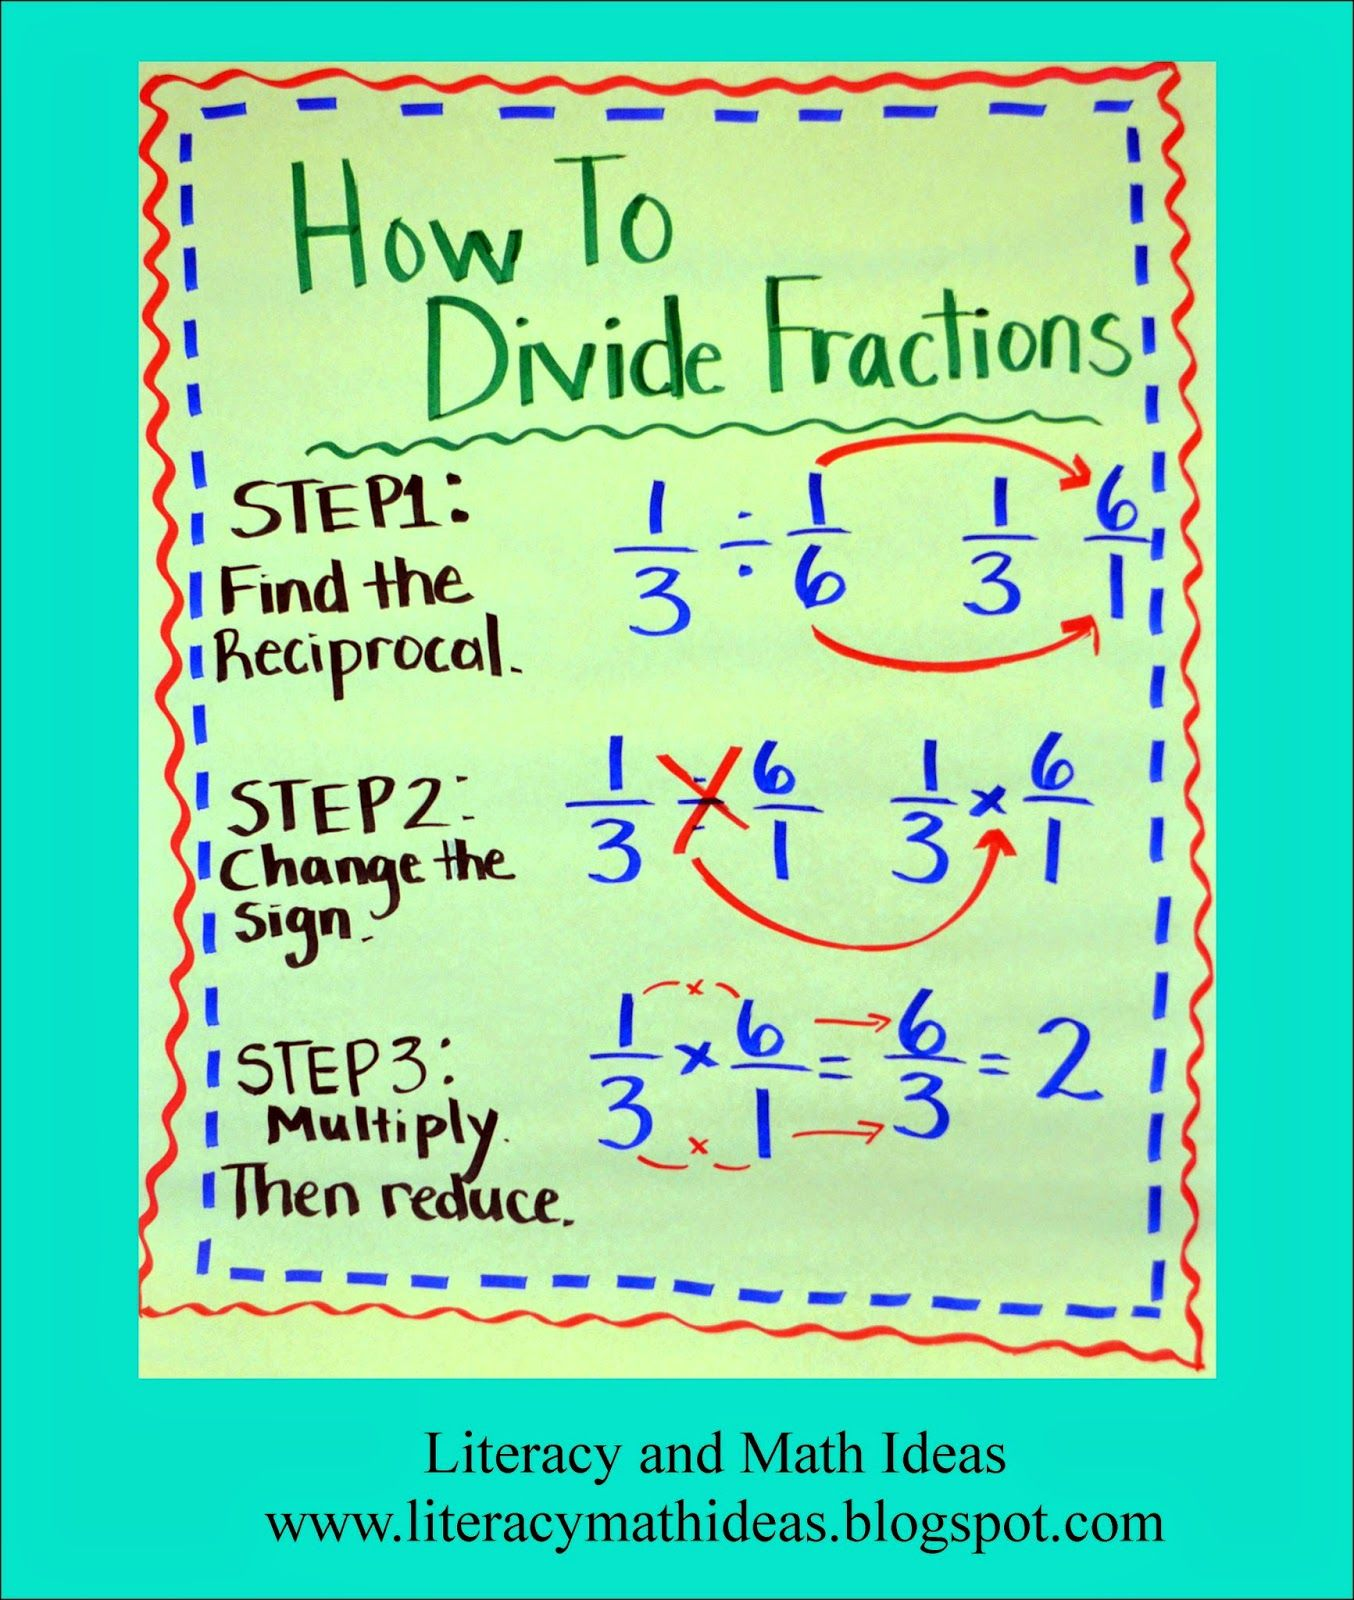 how to divide fractions; just make sure you explain how dividing and